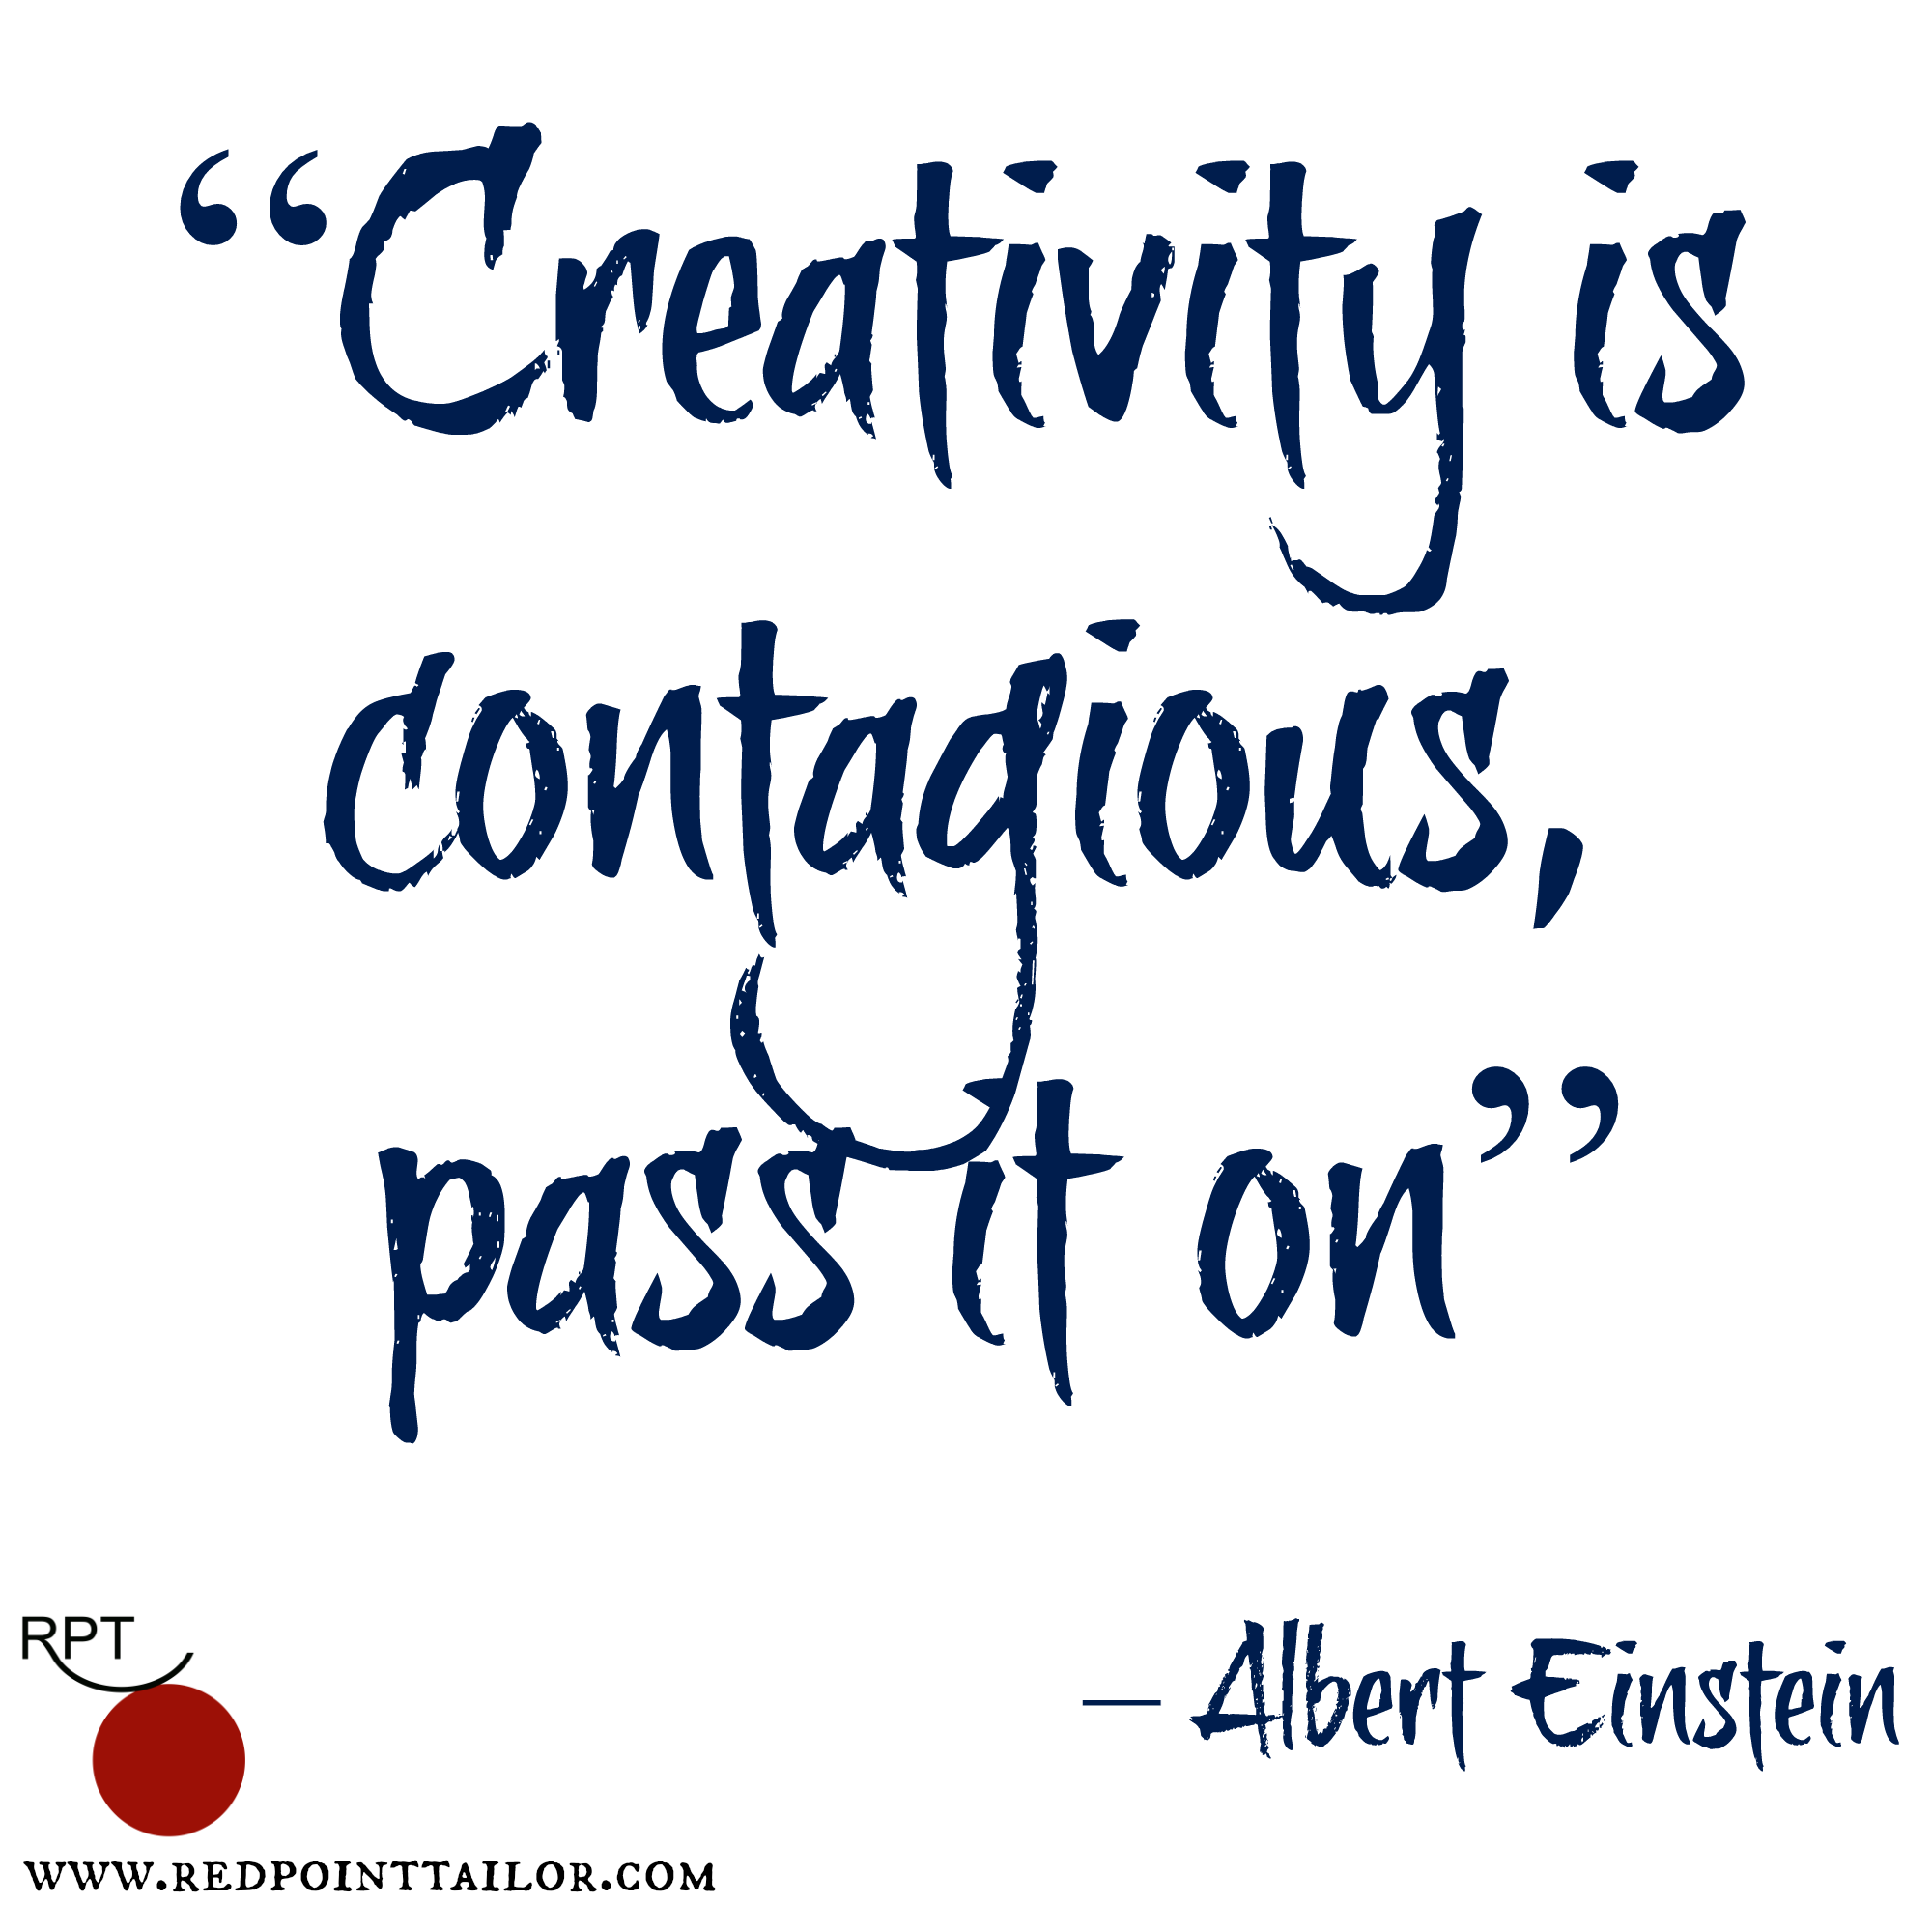 """Creativity is contagious, pass it on""– Albert Einstein"